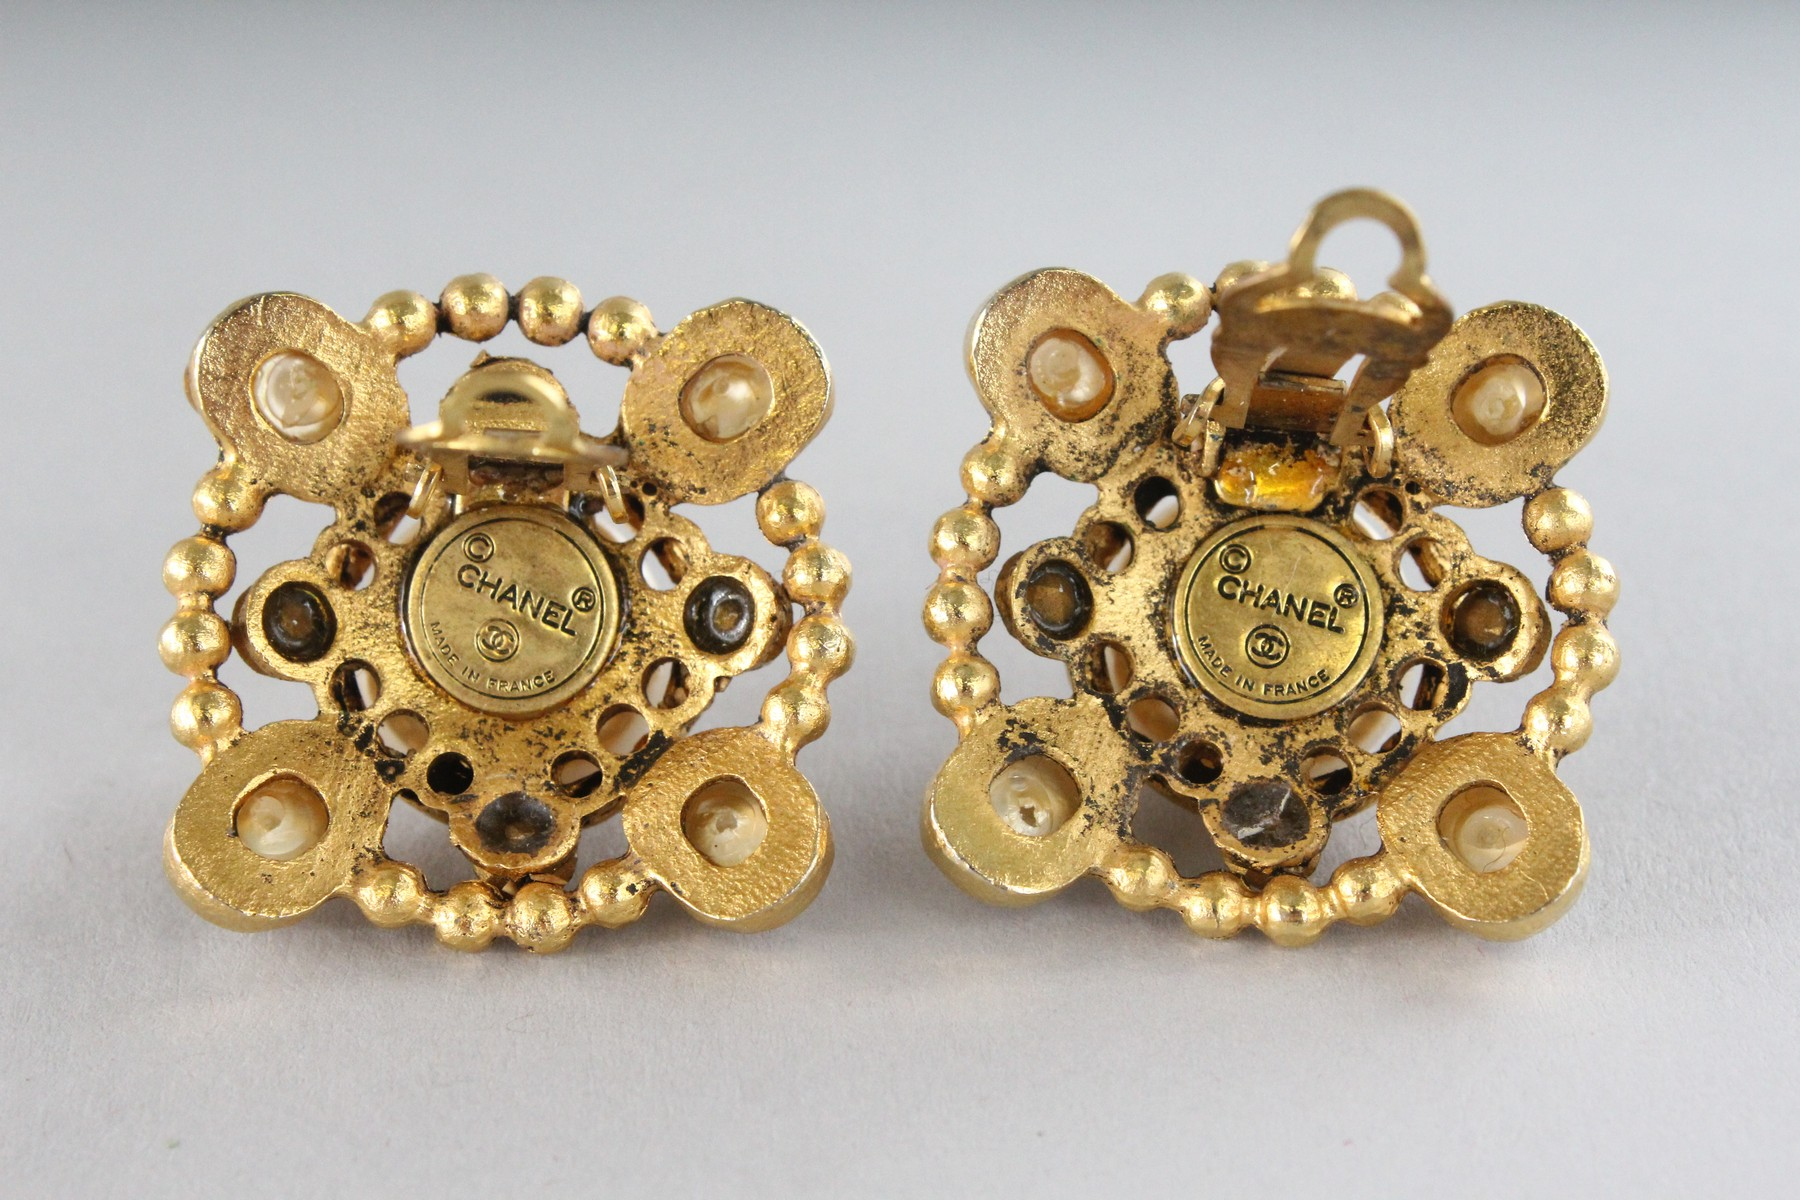 A GOOD PAIR OF CHANEL PEARL EAR CLIPS. - Image 4 of 4